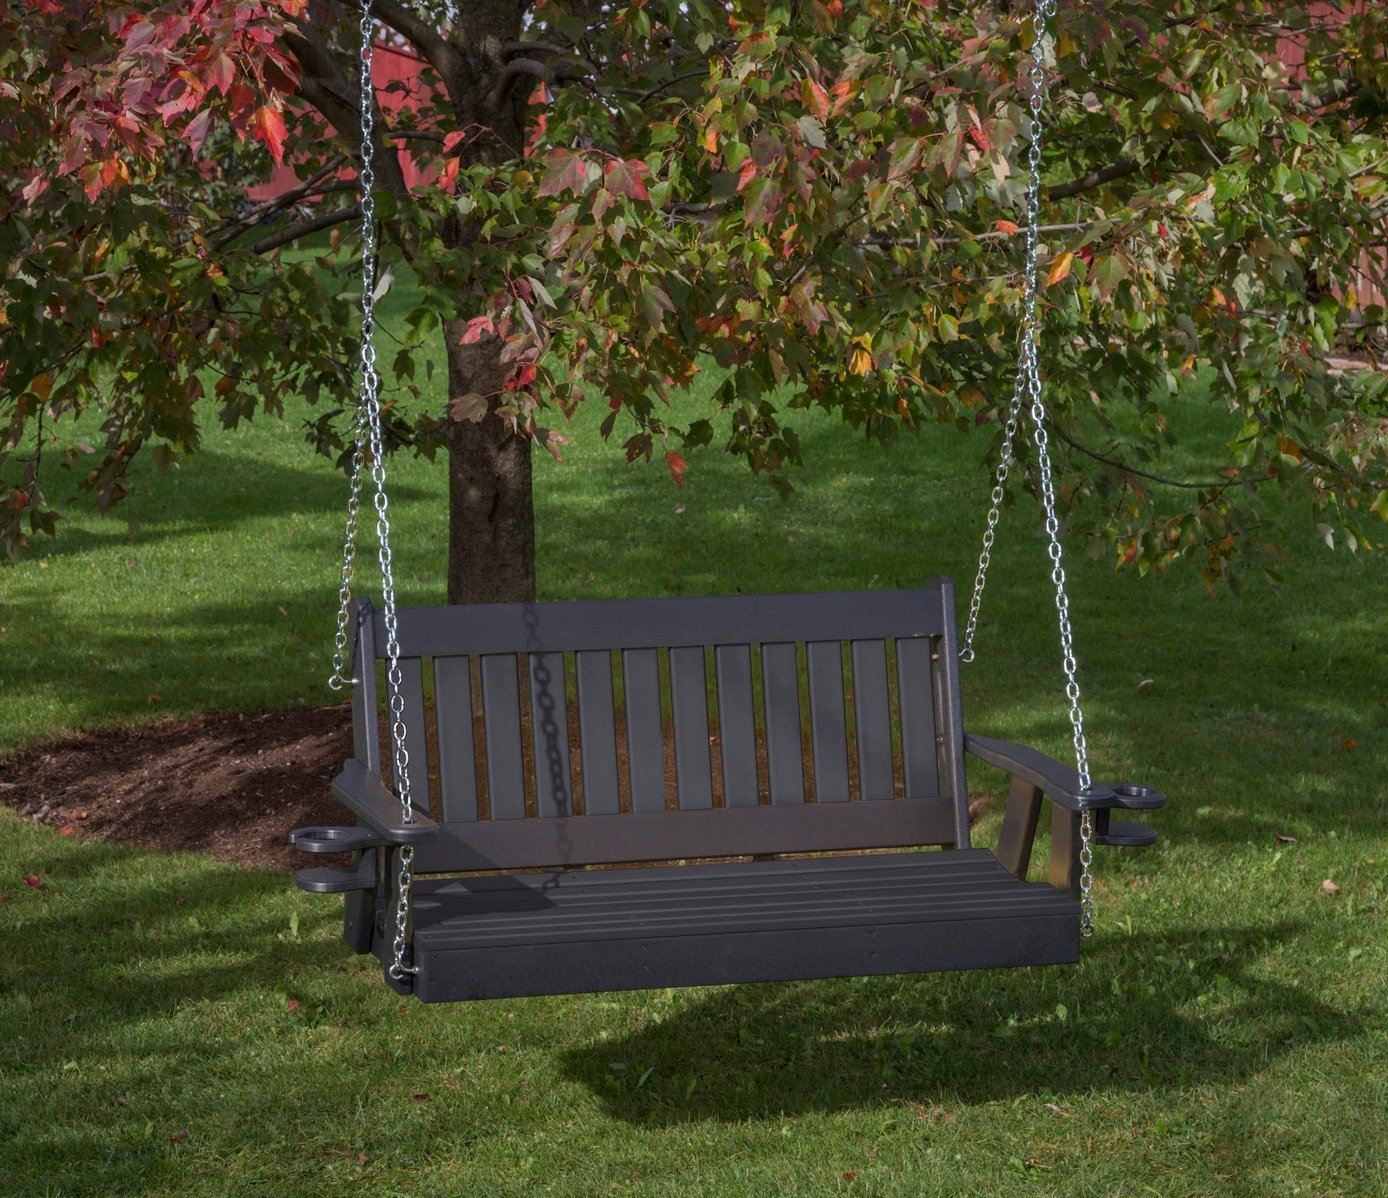 Ecommersify Inc 4FT-Black-Poly Lumber Mission Porch Swing with Cupholder arms Heavy Duty Everlasting PolyTuf HDPE – Made in USA – Amish Crafted